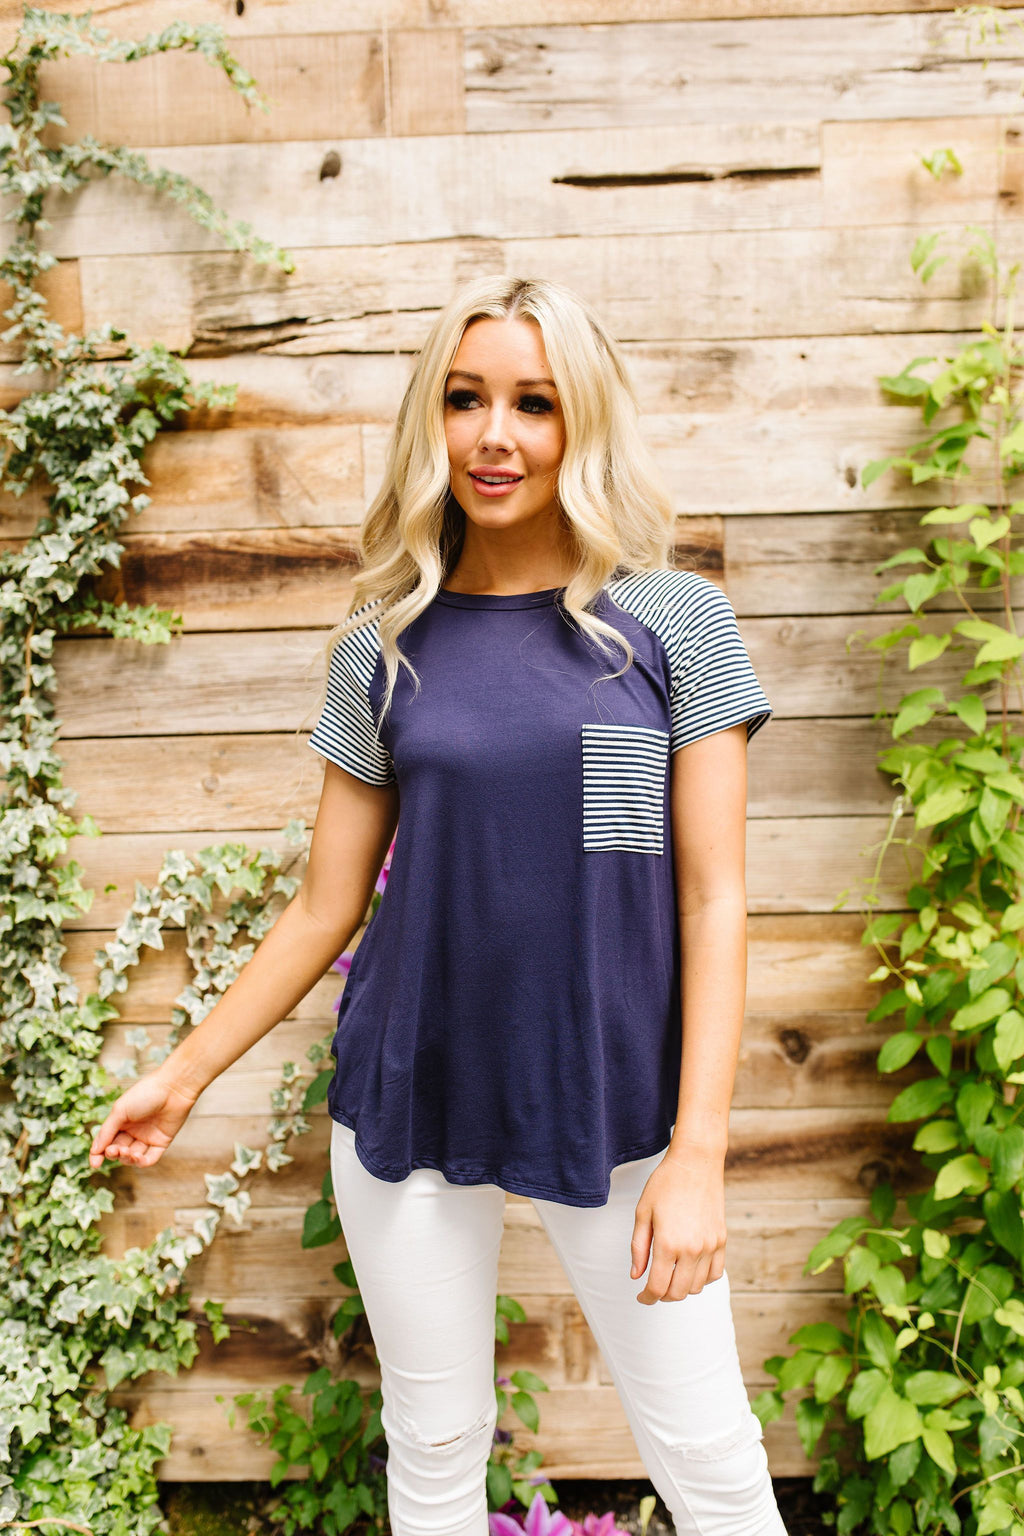 America's Favorite Raglan Top-1XL, 2XL, 3XL, 4-30-2020, Group A, Group B, Group C, Large, Medium, Plus, Small, Tops, XL, XS-Womens Artisan USA American Made Clothing Accessories